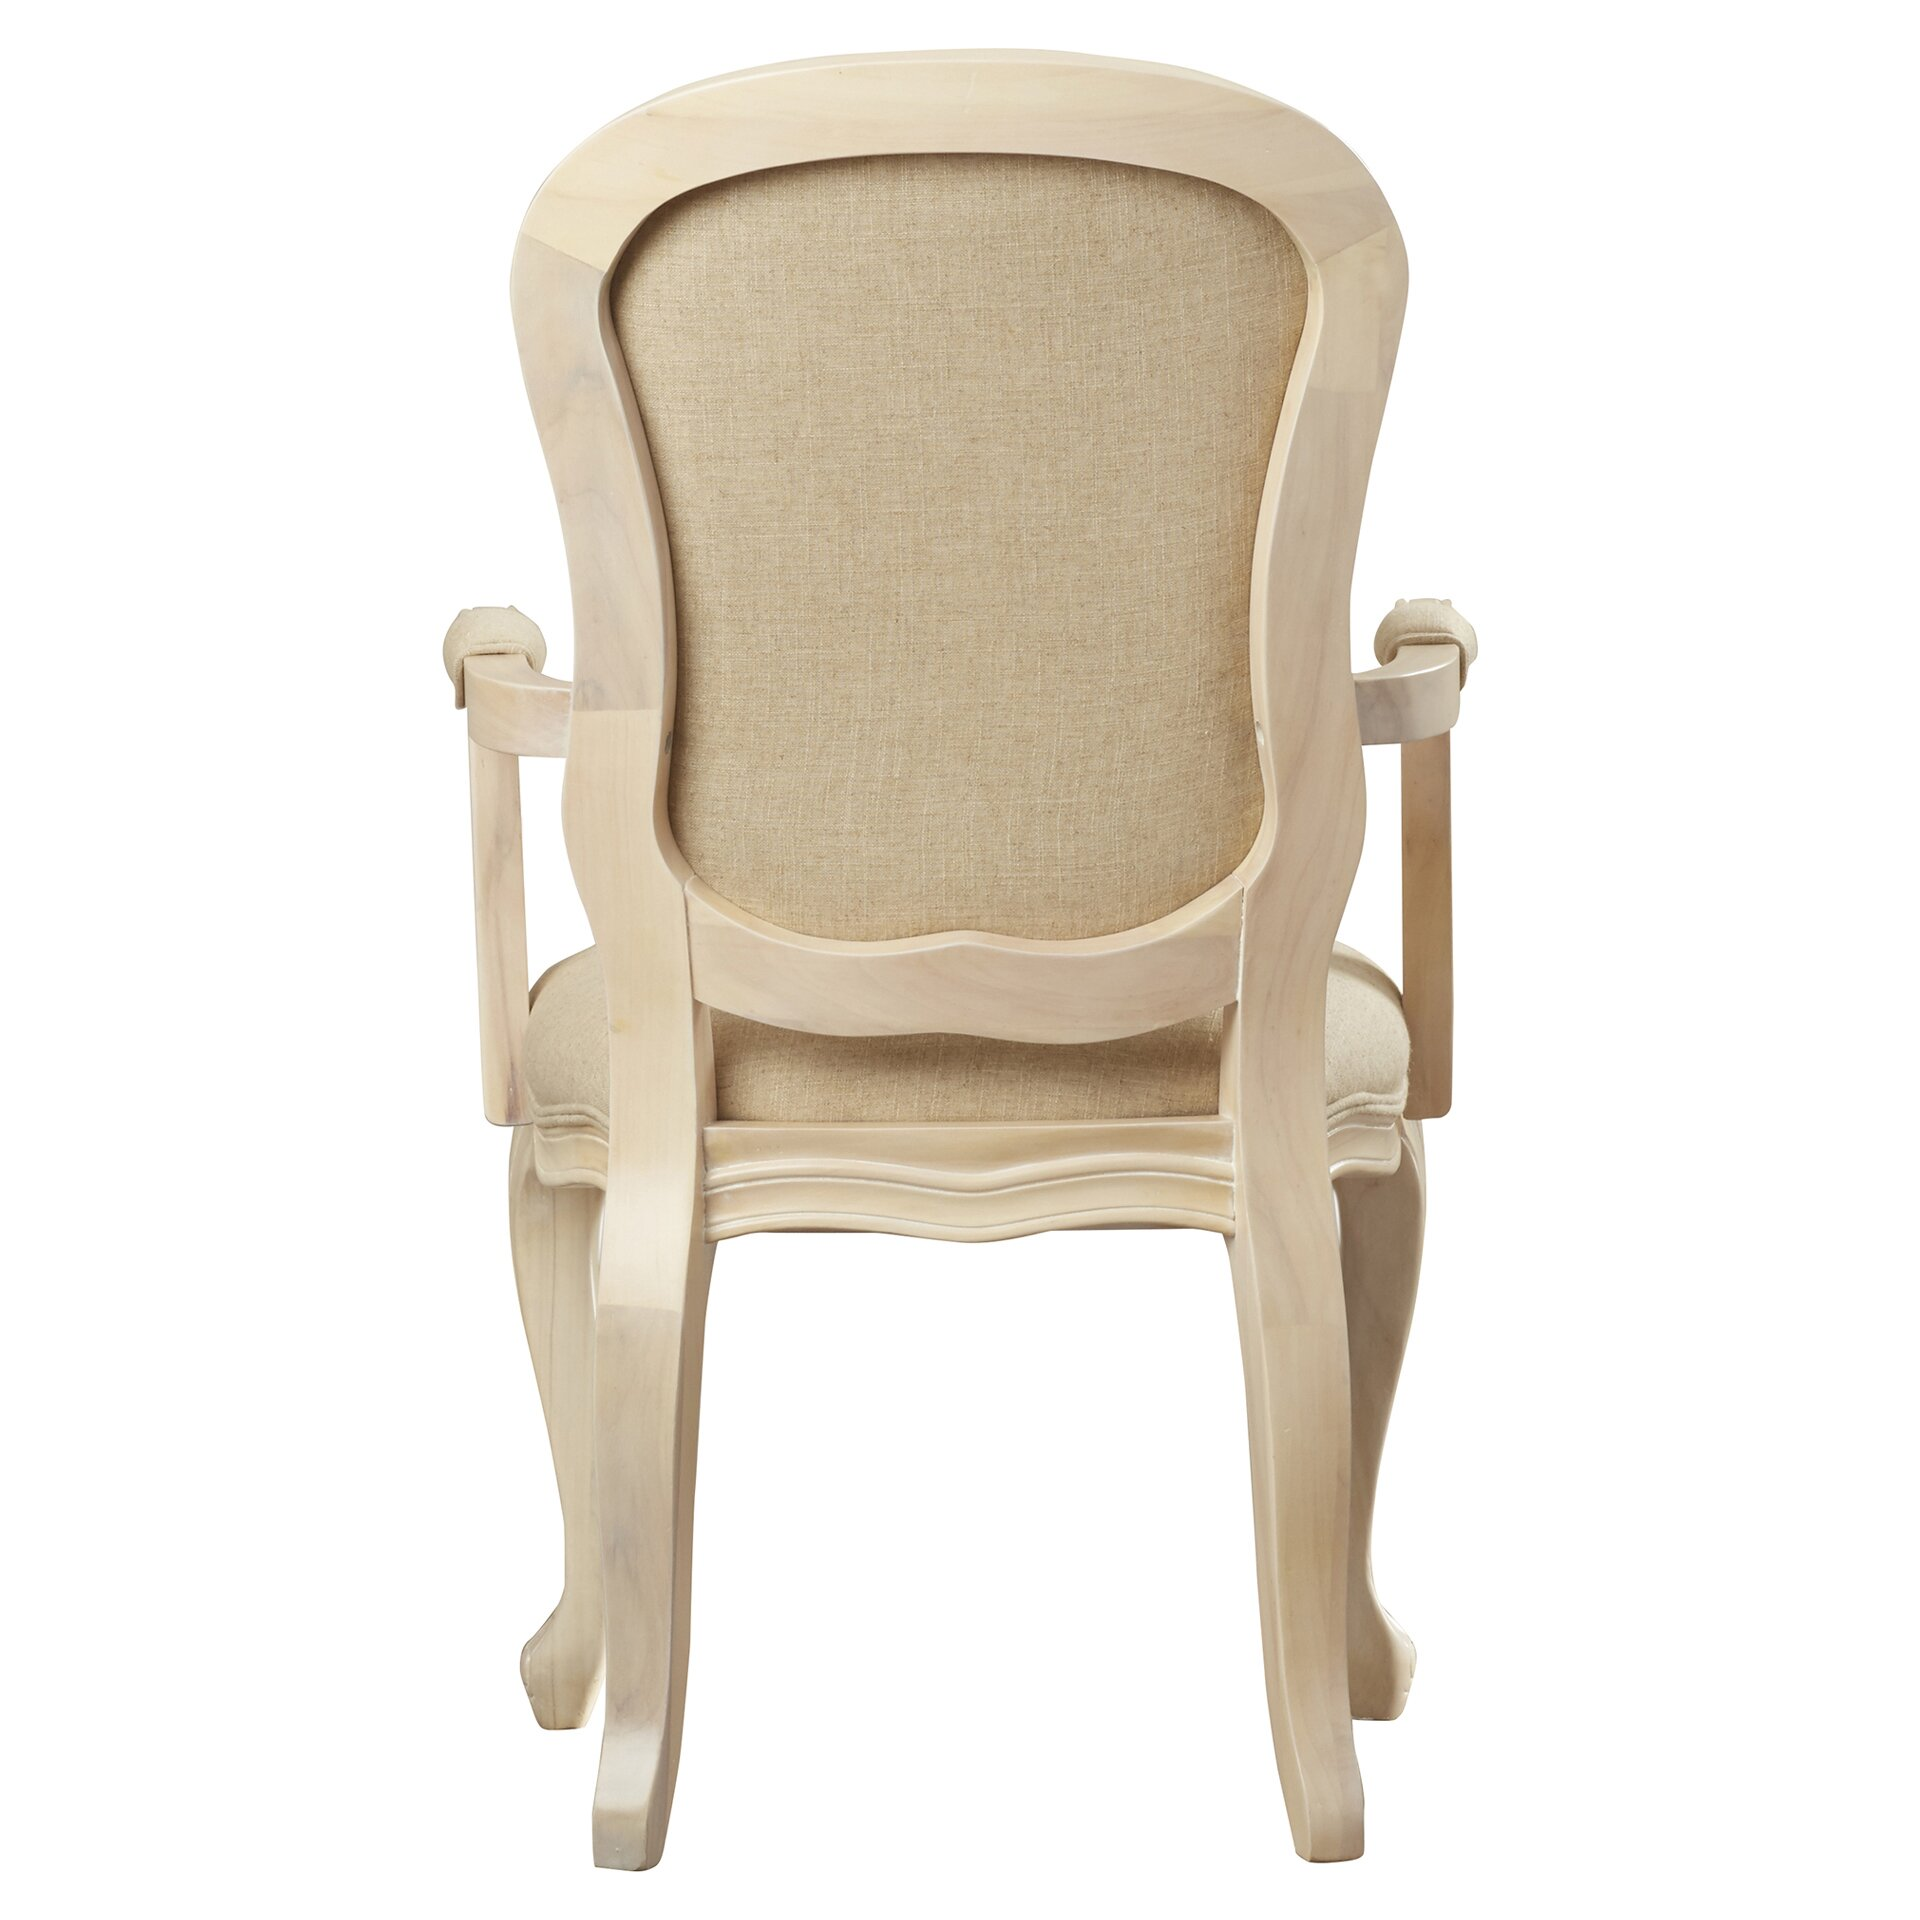 Lark Manor Saint Quentin Accent Arm Chair amp Reviews Wayfair : Saint Quentin Accent Arm Chair LARK1980 from www.wayfair.com size 1920 x 1920 jpeg 332kB